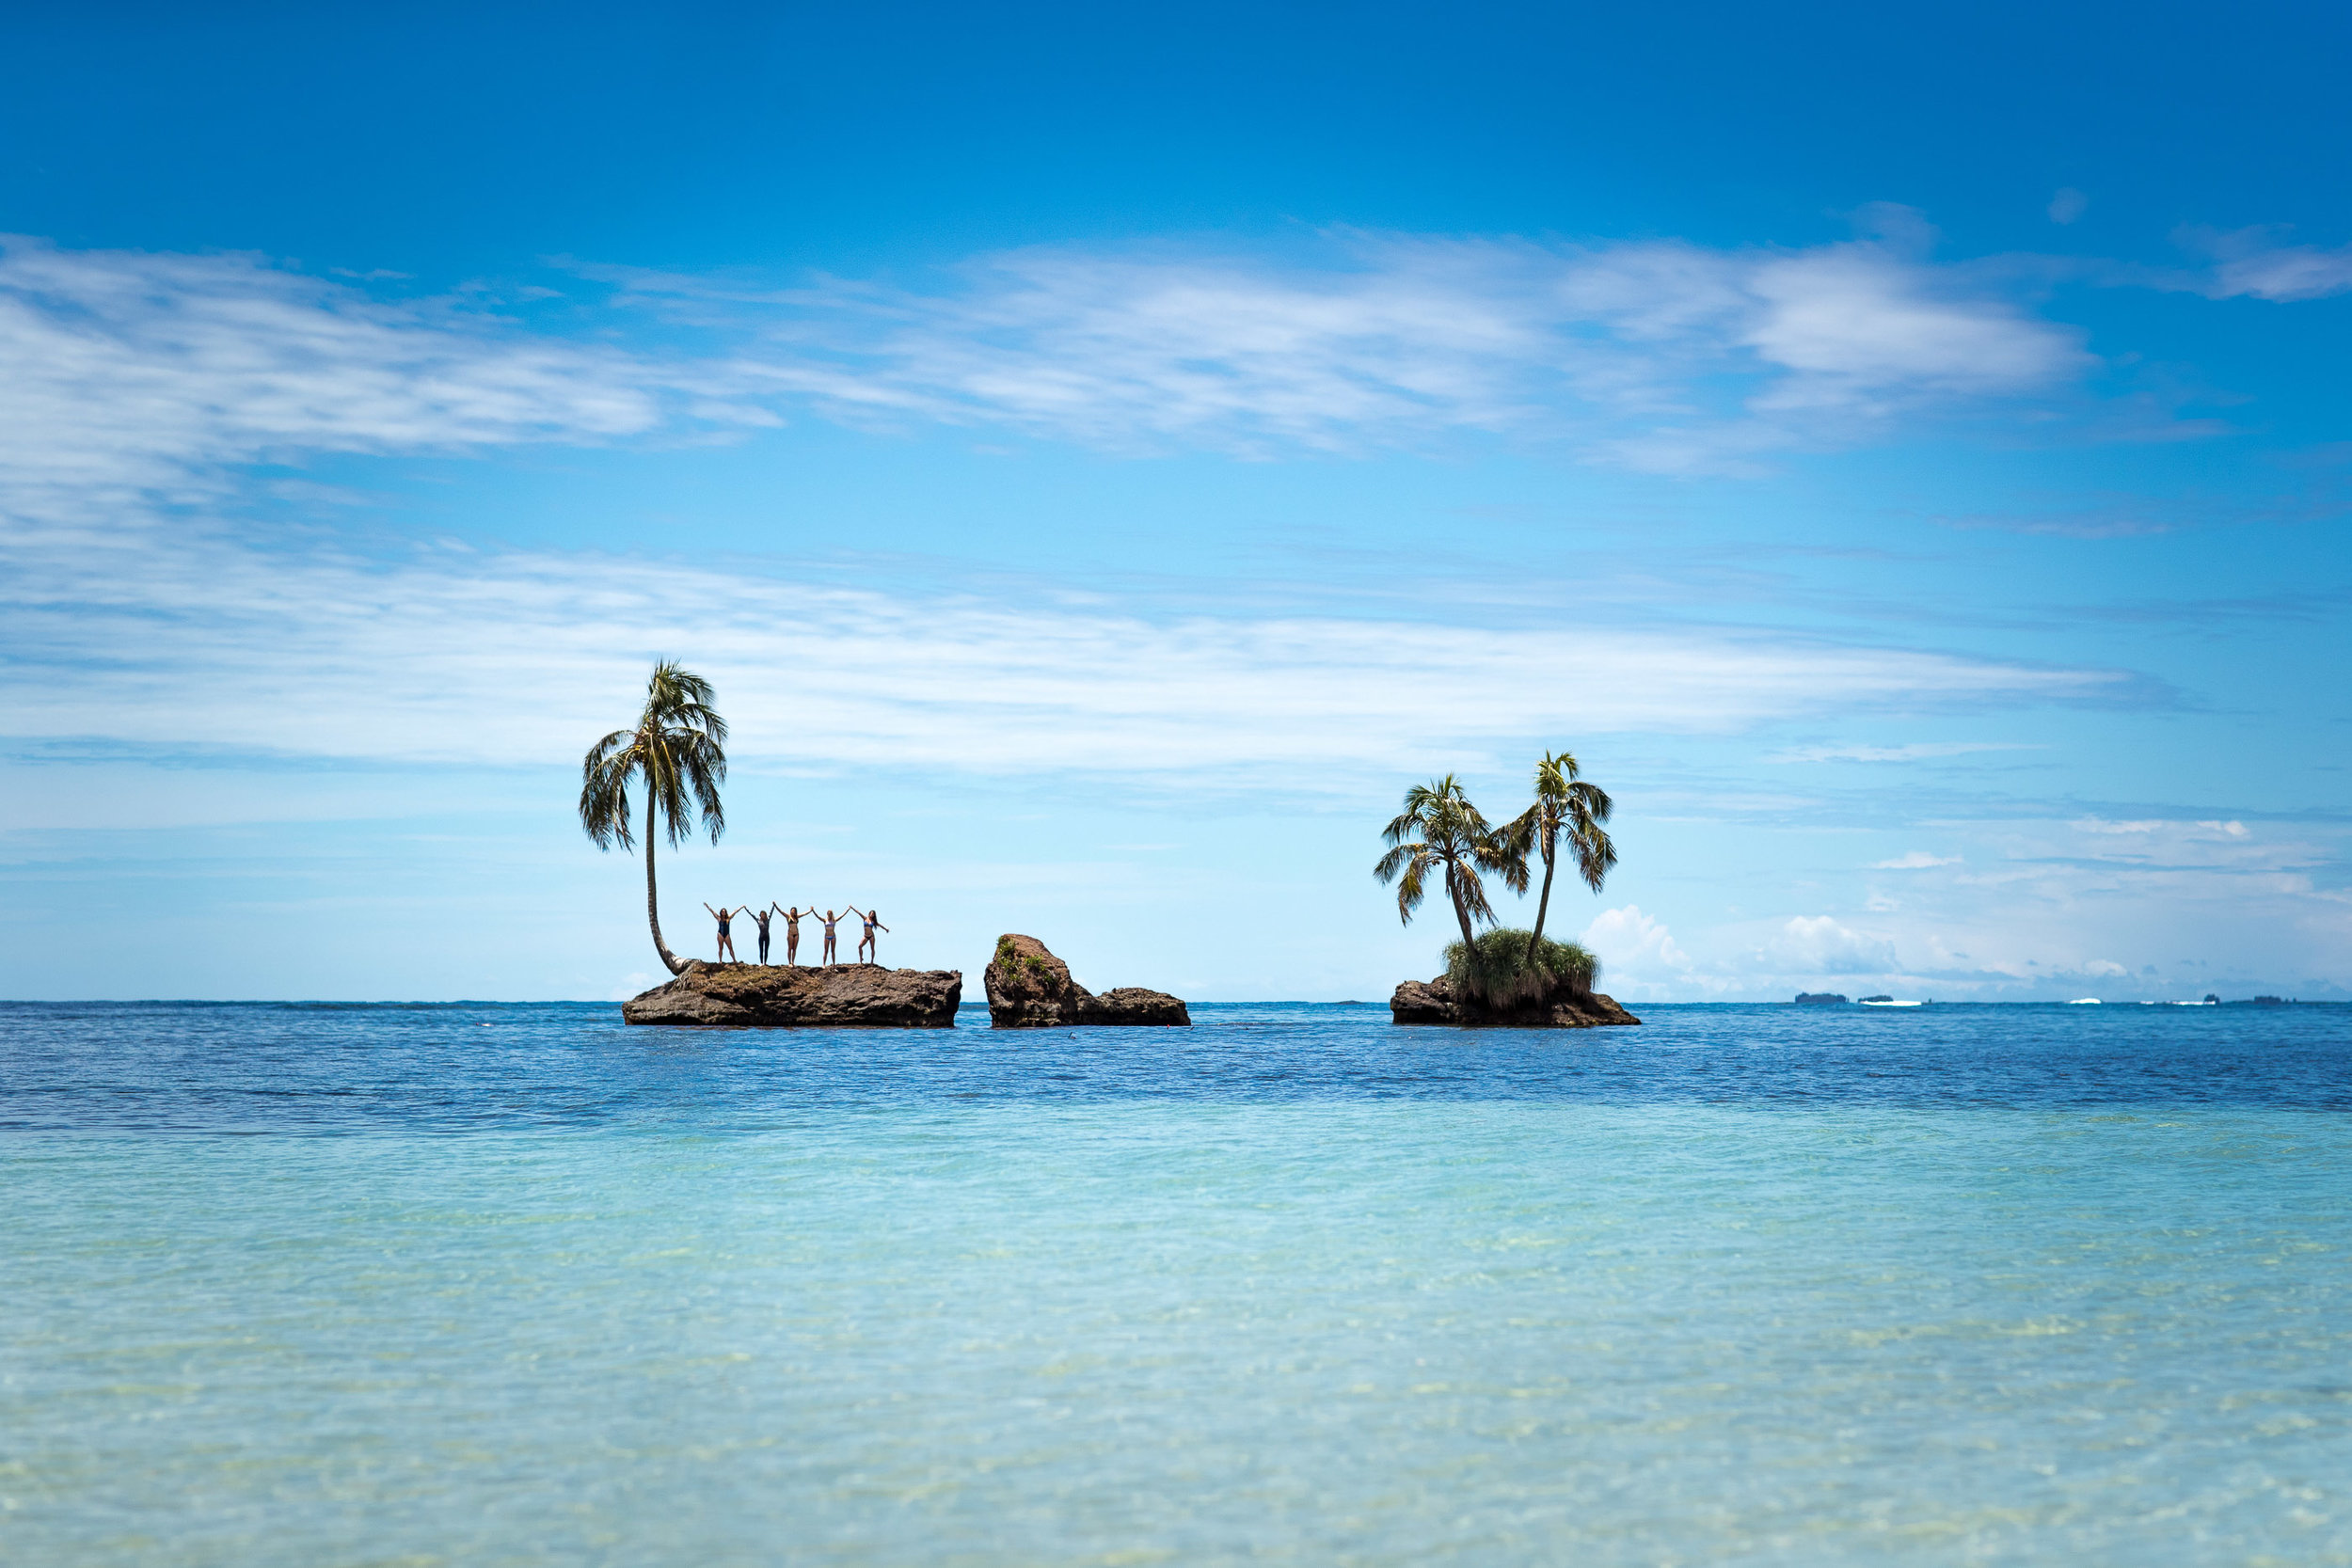 Yes this is tiny reef island with palm trees!